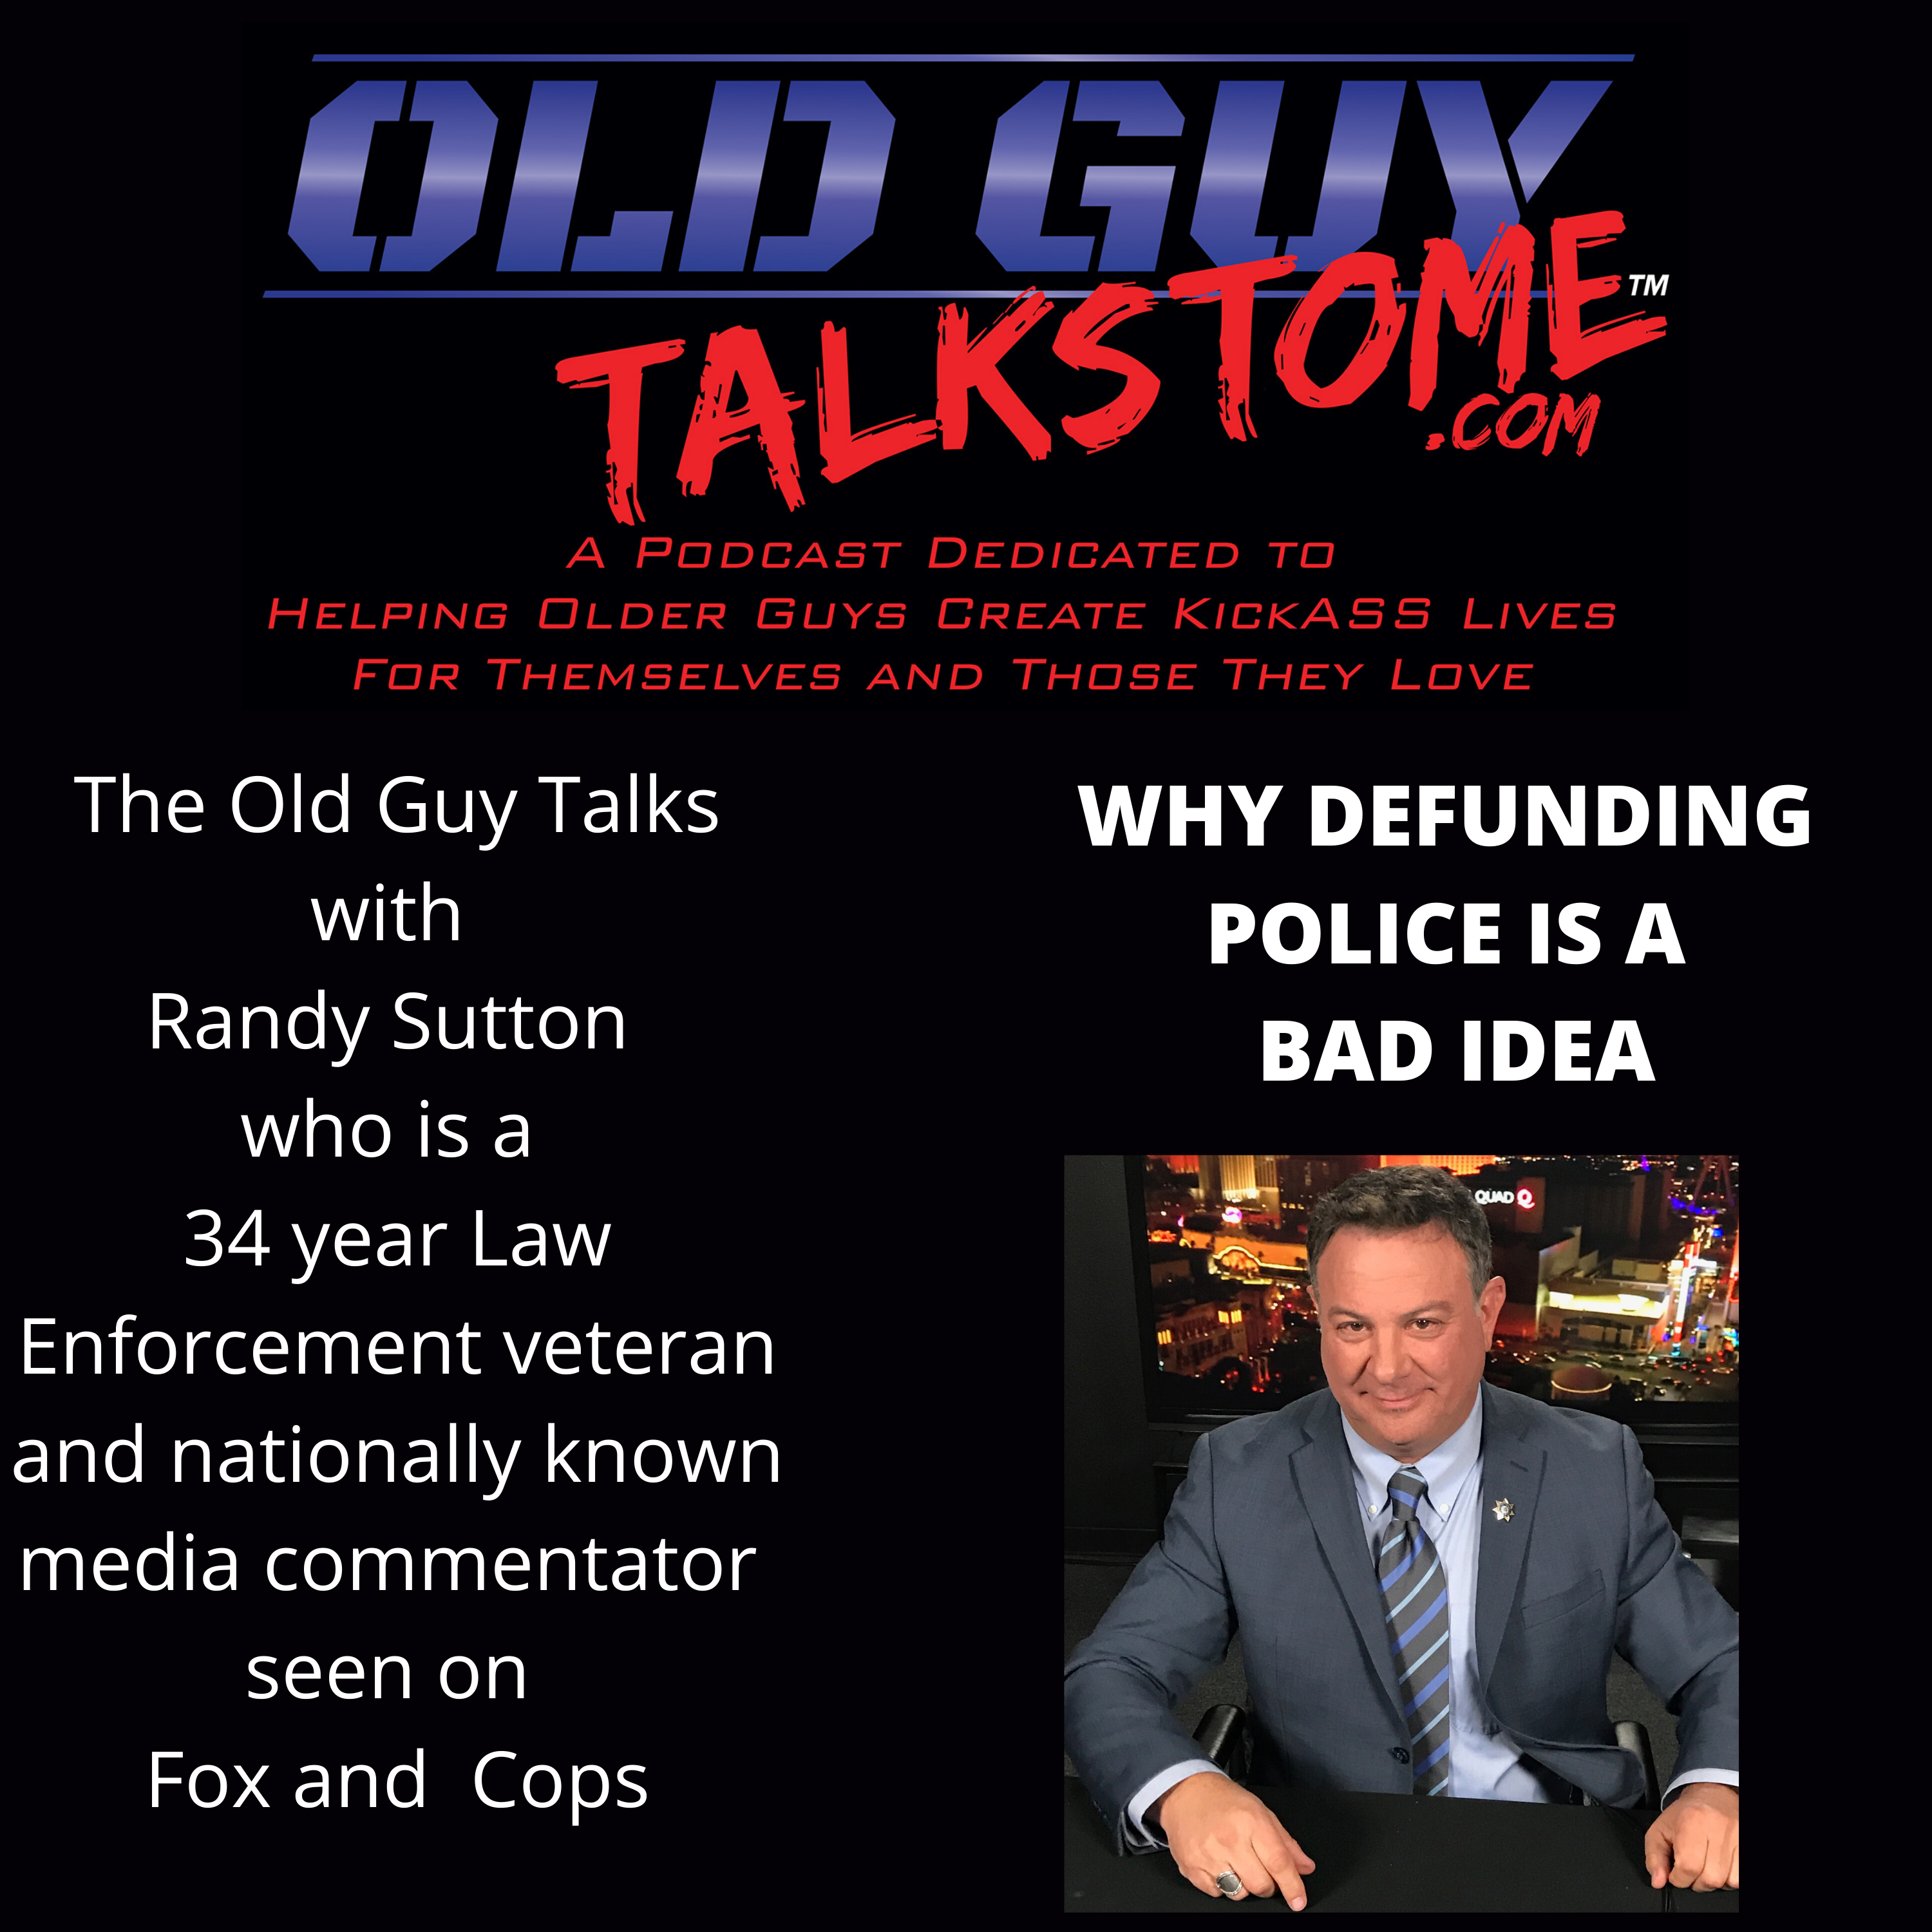 OldGuyTalksToMe - WHY DEFUNDING THE POLICE IS A BAD IDEA